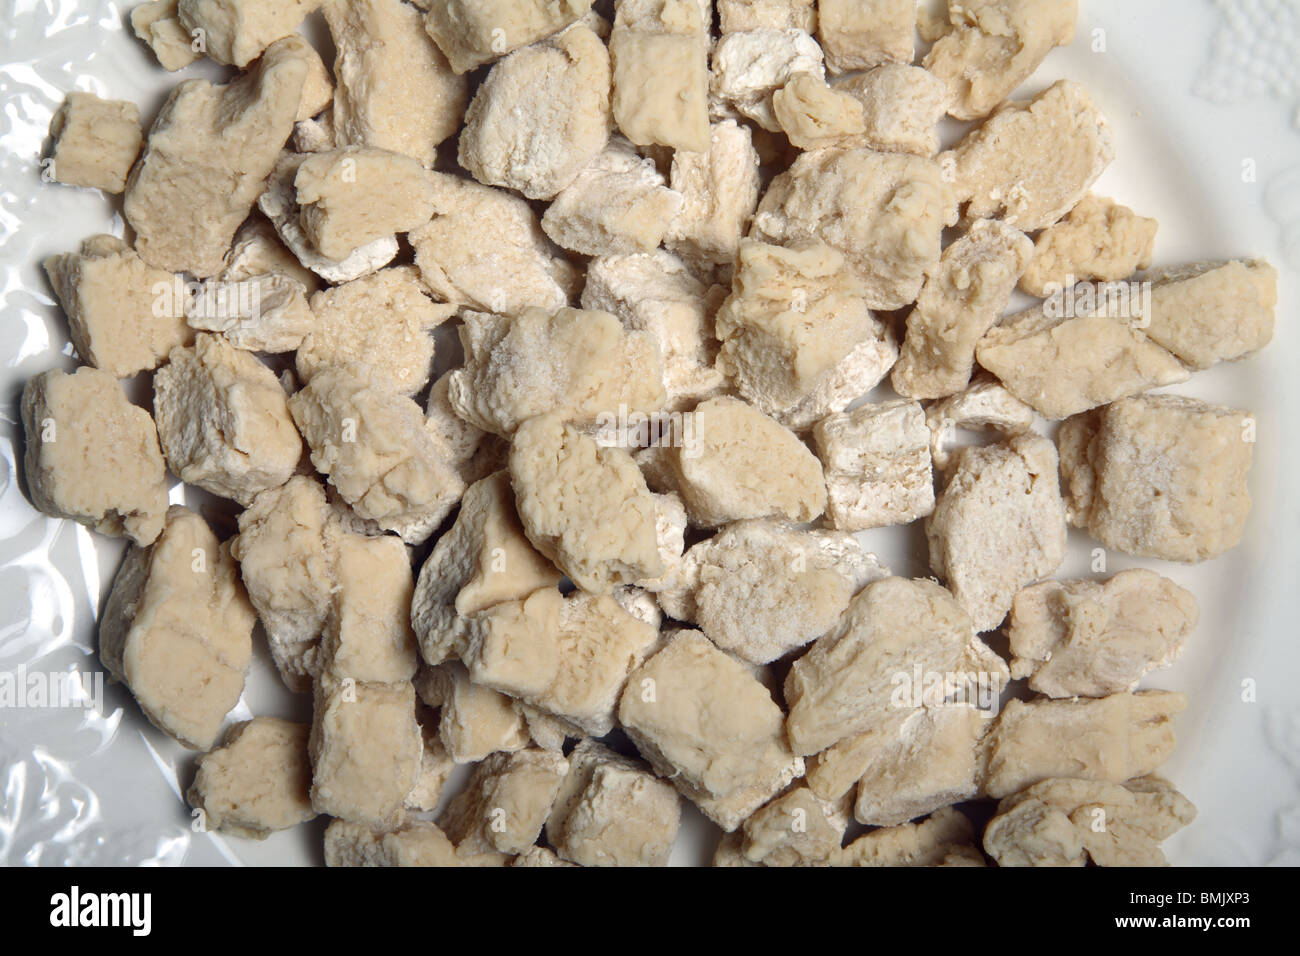 Raw Quorn, a meat substitute. - Stock Image